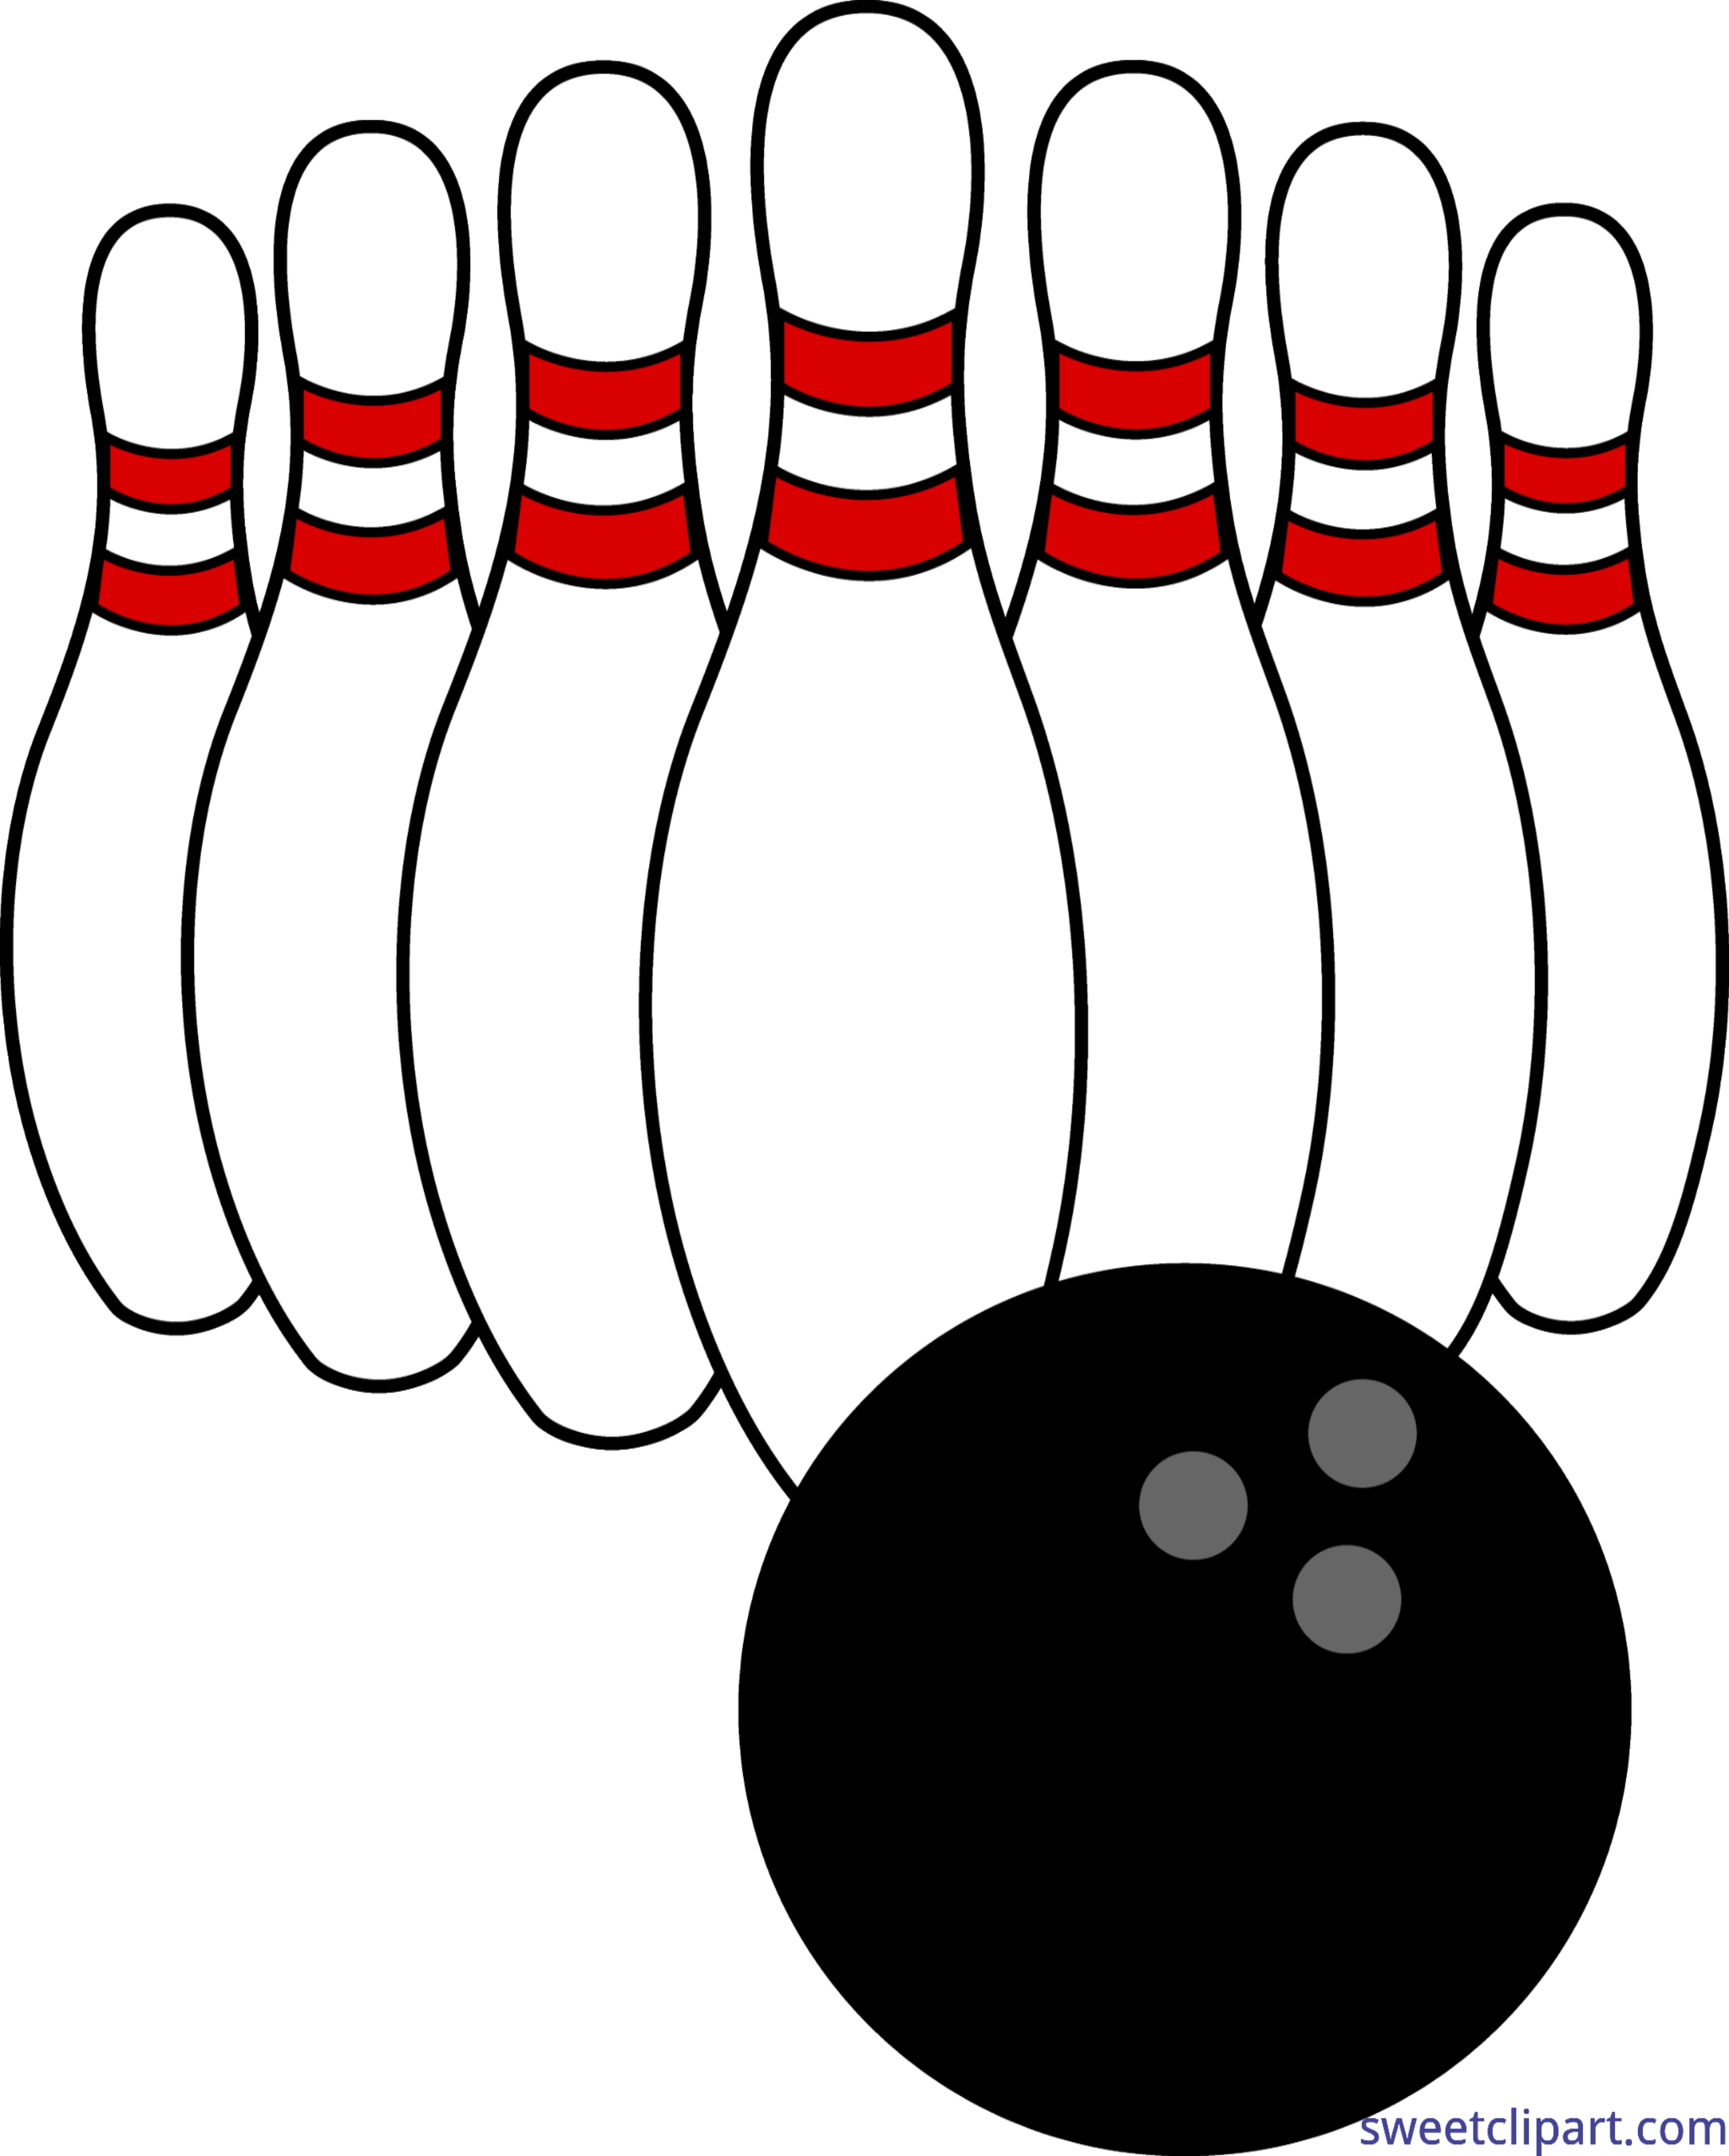 Bowling clip art png. Ball and pins sweet